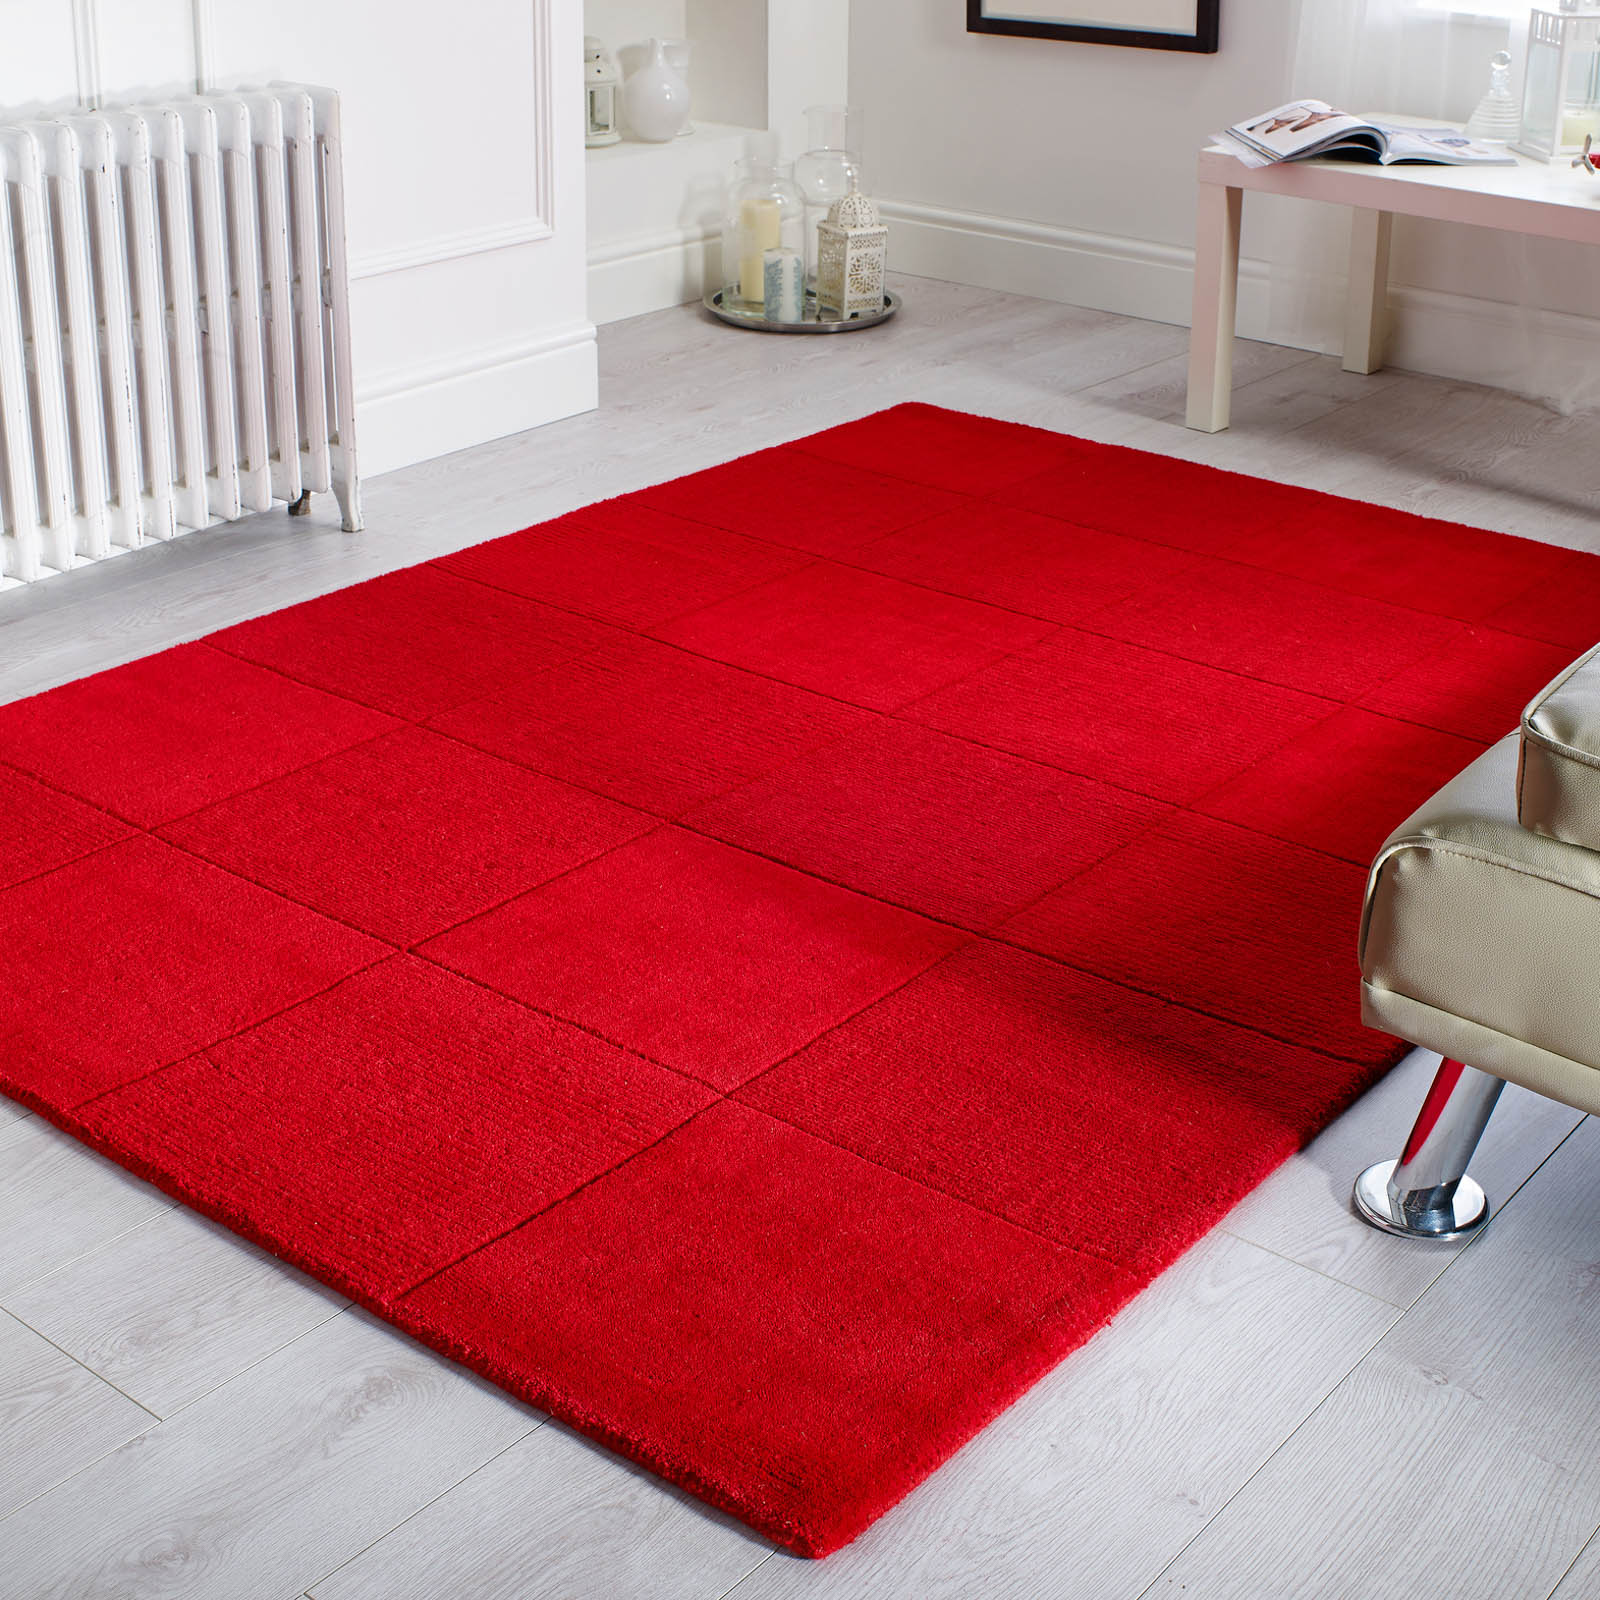 Wool Squares Rugs in Red